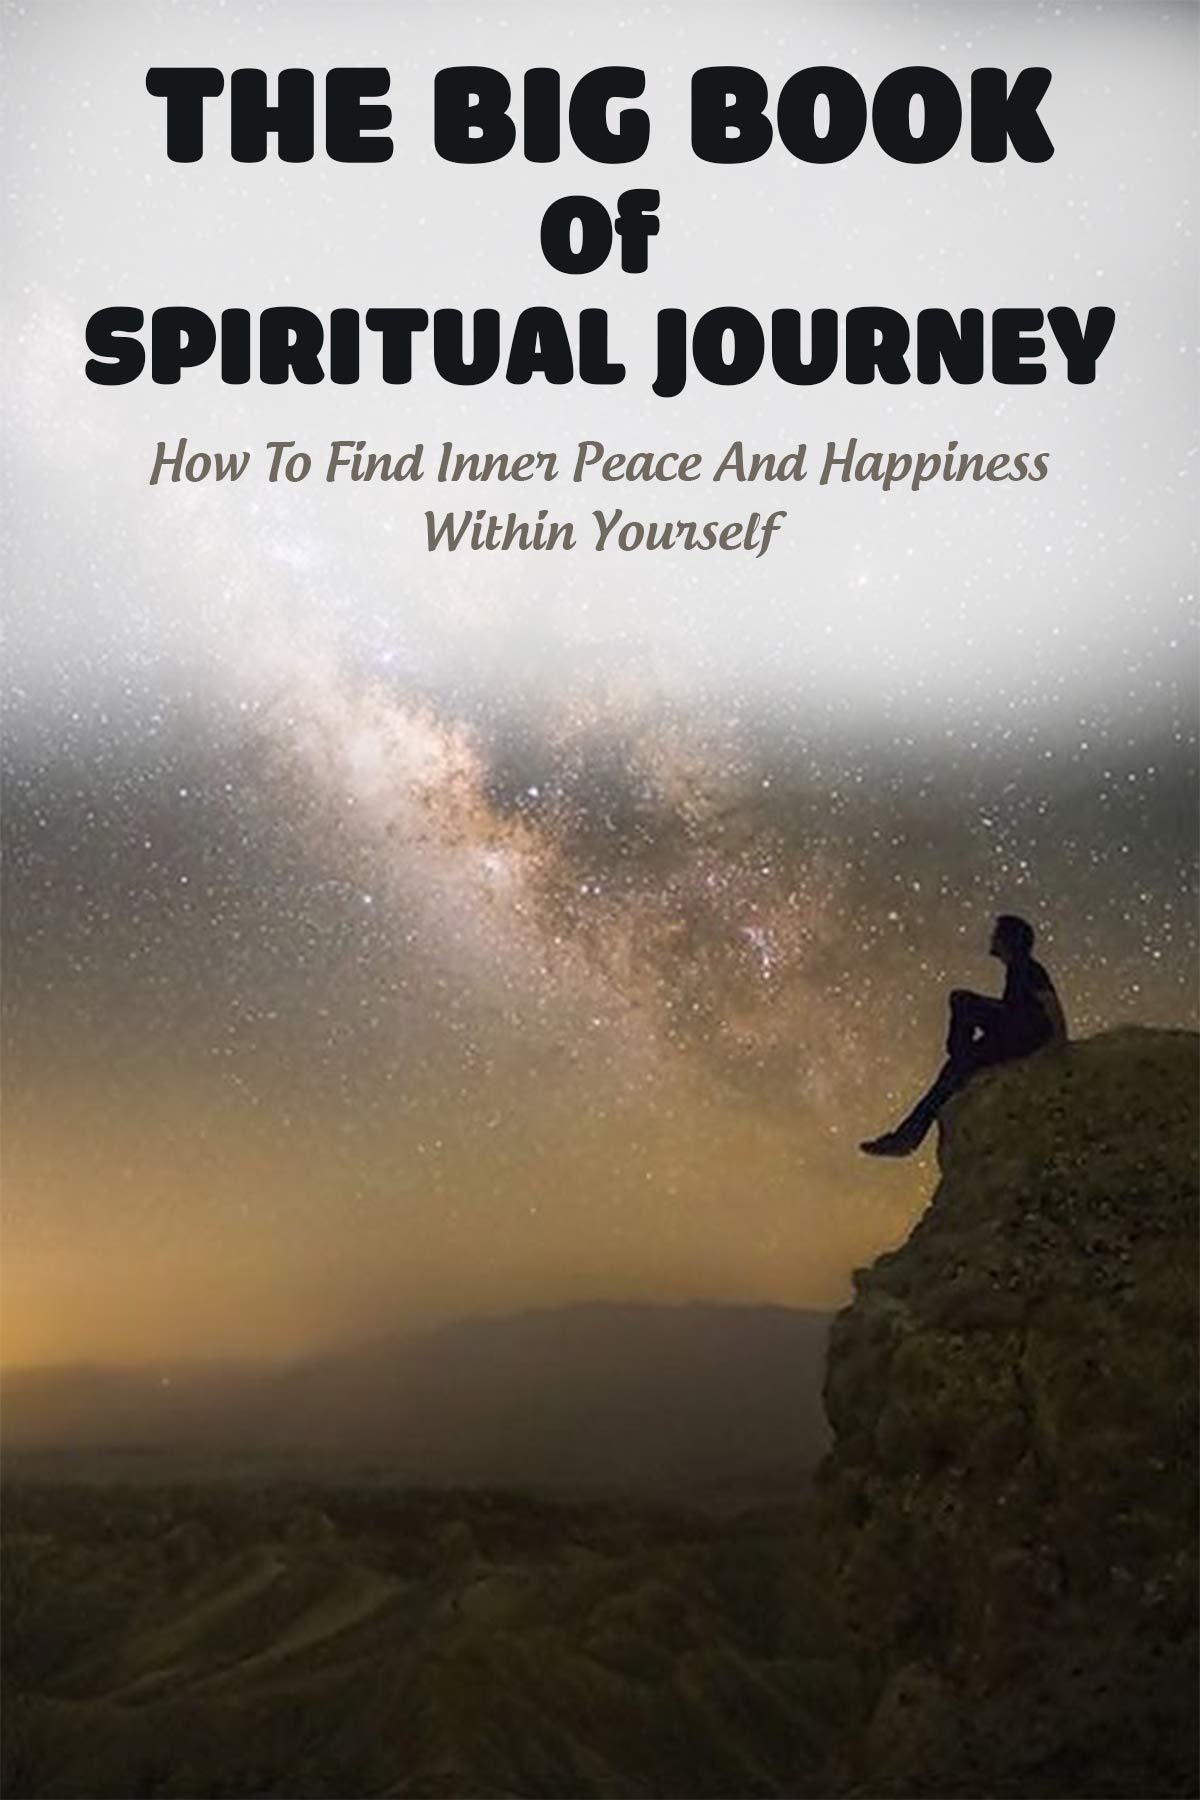 The Big Book Of Spiritual Journey: How To Find Inner Peace And Happiness Within Yourself: Life Changing Books